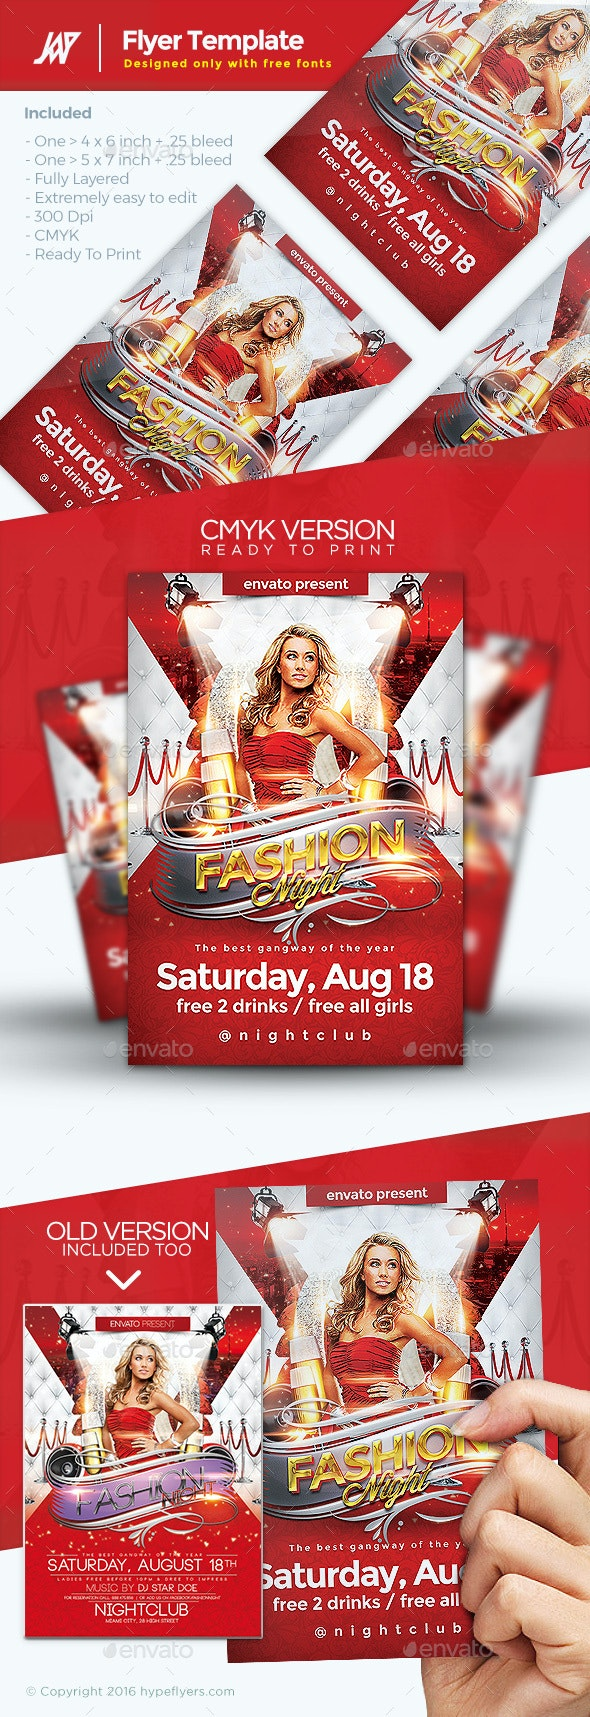 Fashion Night Event Flyer - Clubs & Parties Events